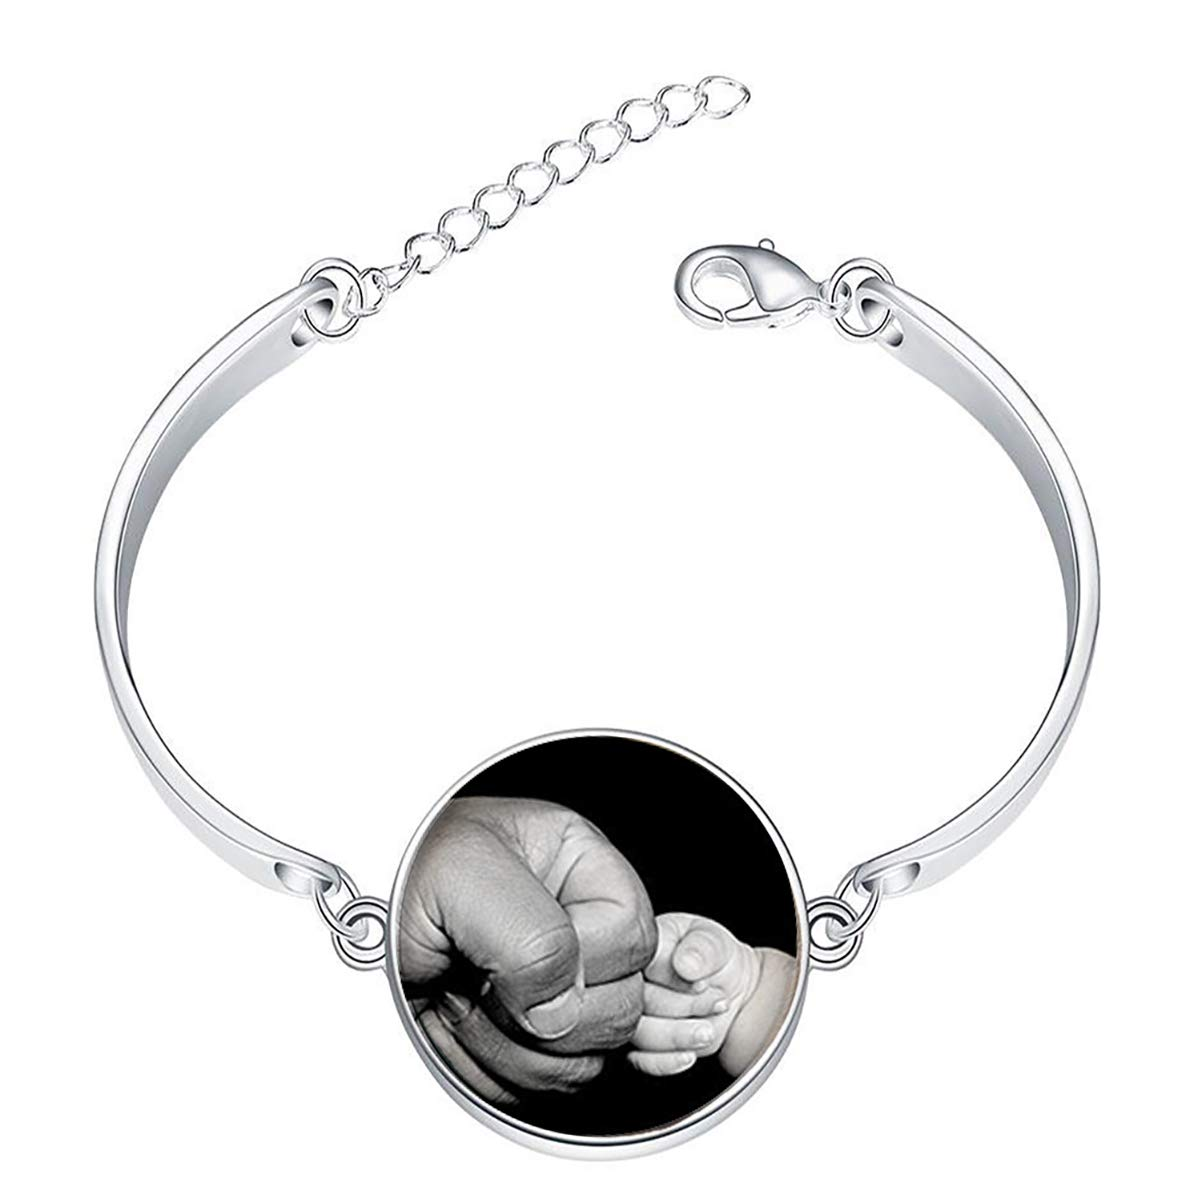 Artwork Store Adjustable Silver Bracelets Fathers Big Fist and Kids Small Fist Charming Fashion Chain Link Bracelets Jewelry for Women